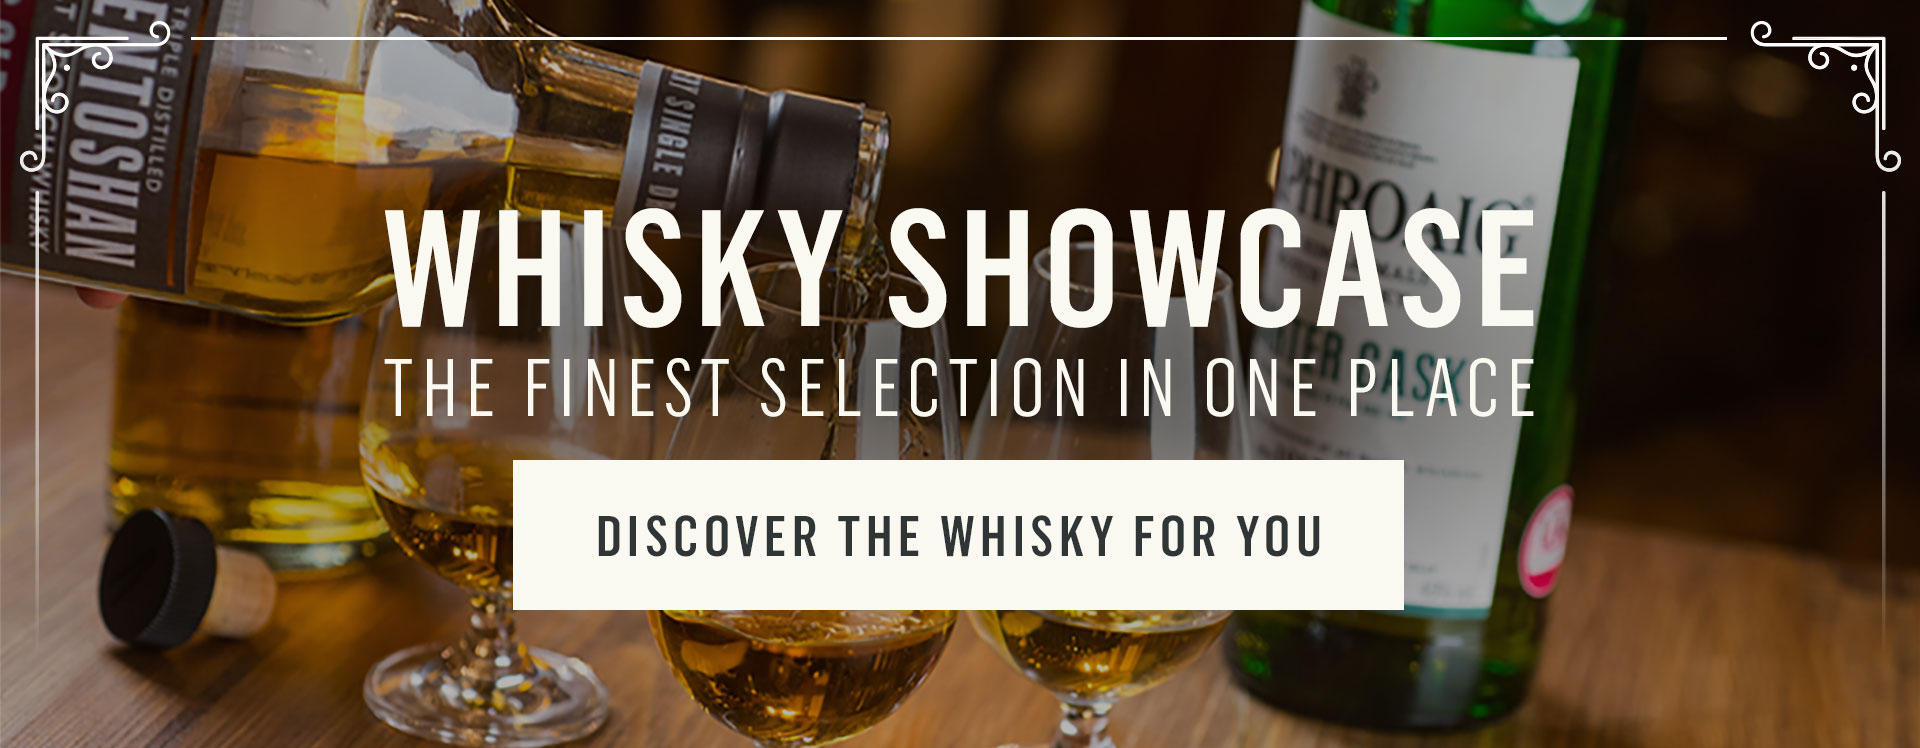 Whisky Showcase at The Pump House in Brighton